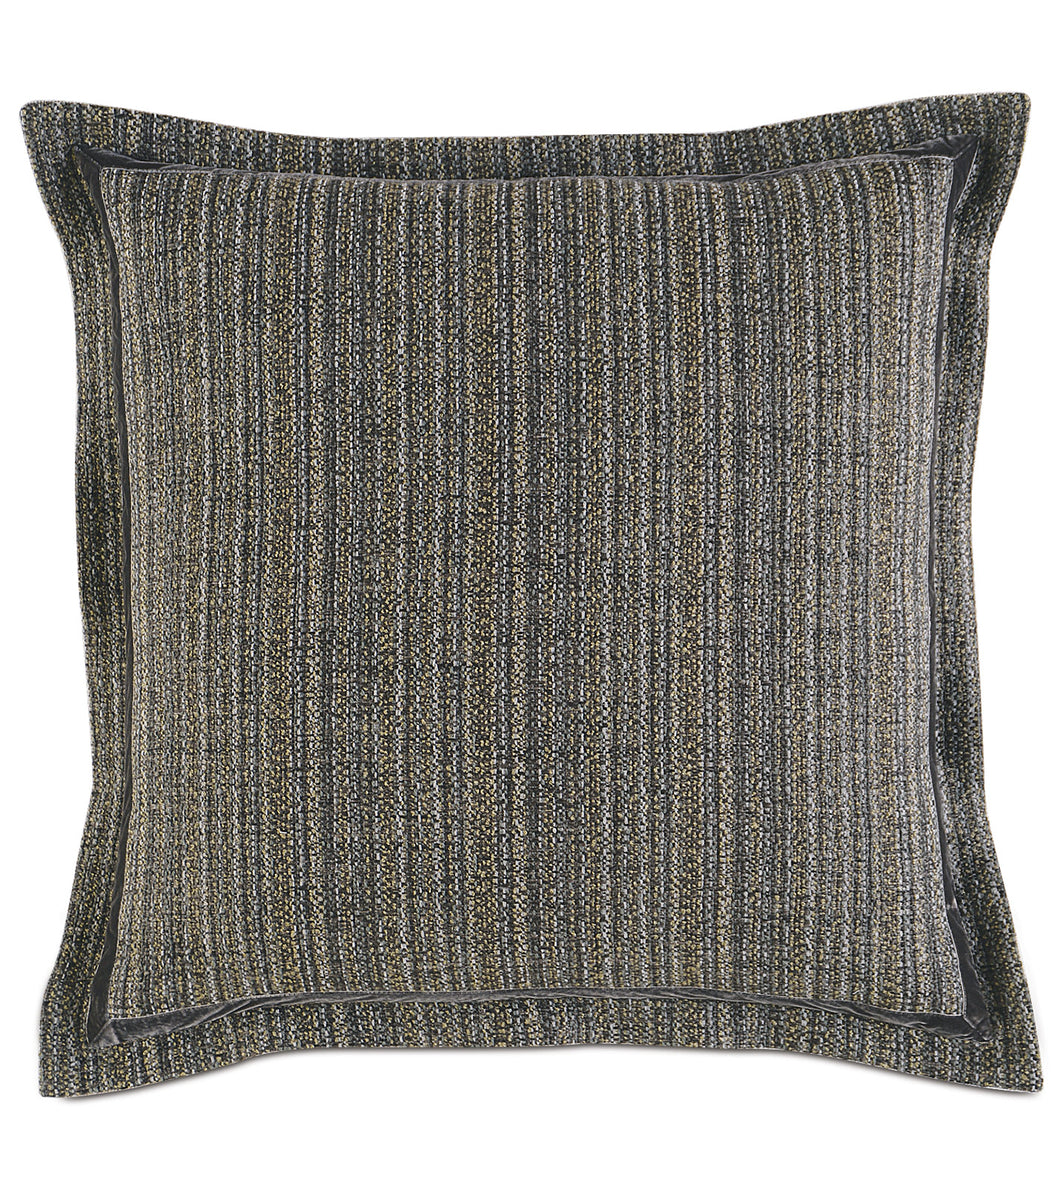 Pebble Gray Lodge Striped Jacquard Euro Sham Self Flange 27